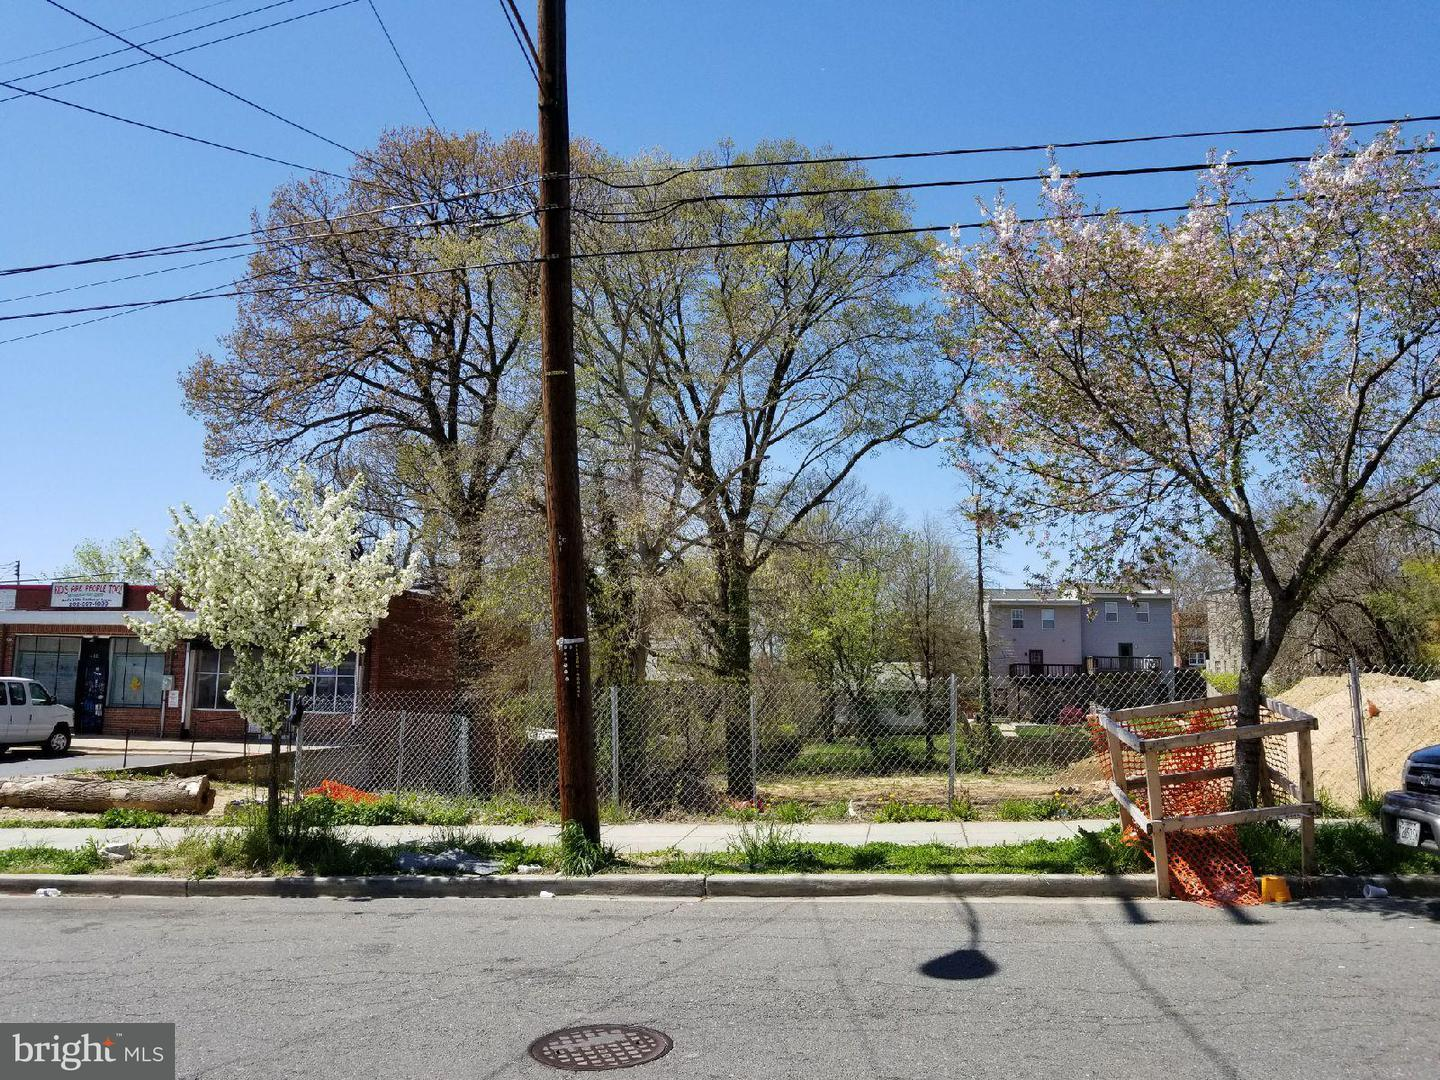 Land for Sale at 61st St NE Washington, District Of Columbia 20019 United States